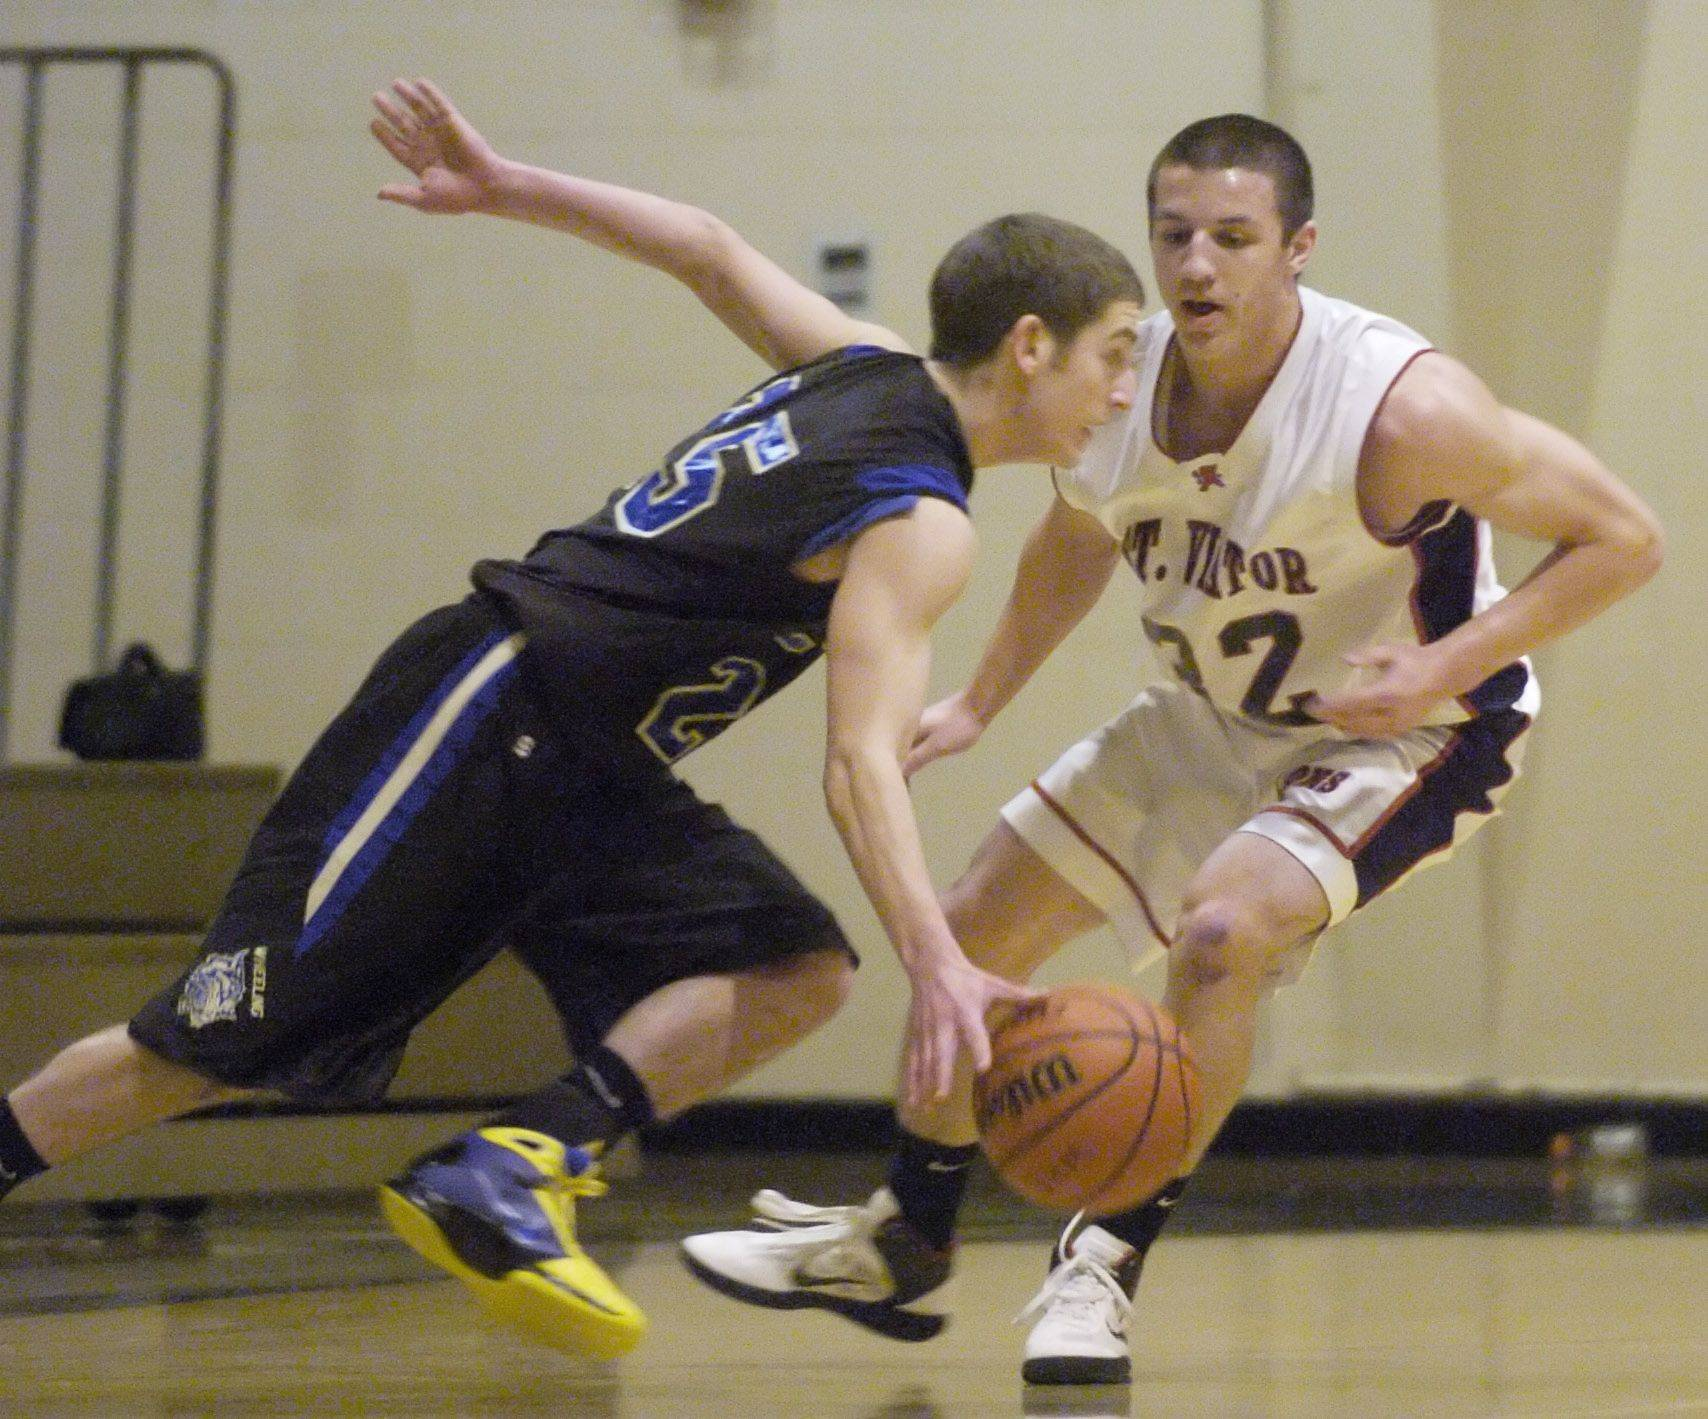 Images from the St. Viator vs. Wheeling boys basketball game Wednesday, December 29, 2010.